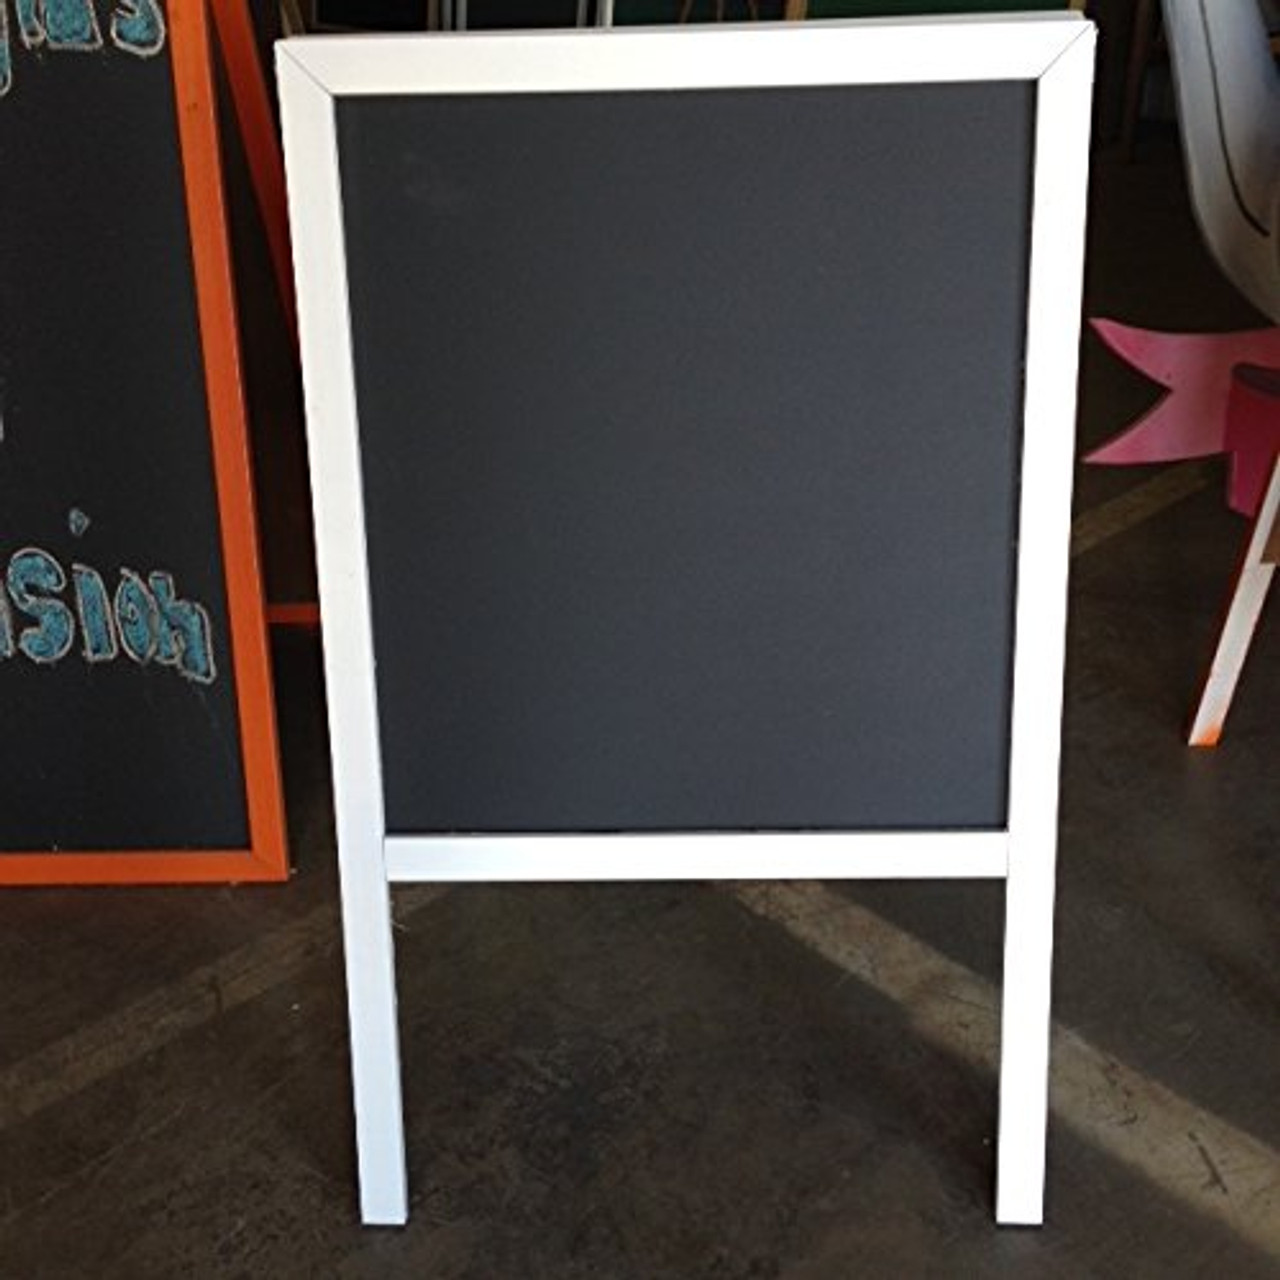 Sidewalk Display Sign Announcement Board 39 X 24 Black Chalkboard White Wood Frame Double Sided Bridal Boutique Wedding Banquet